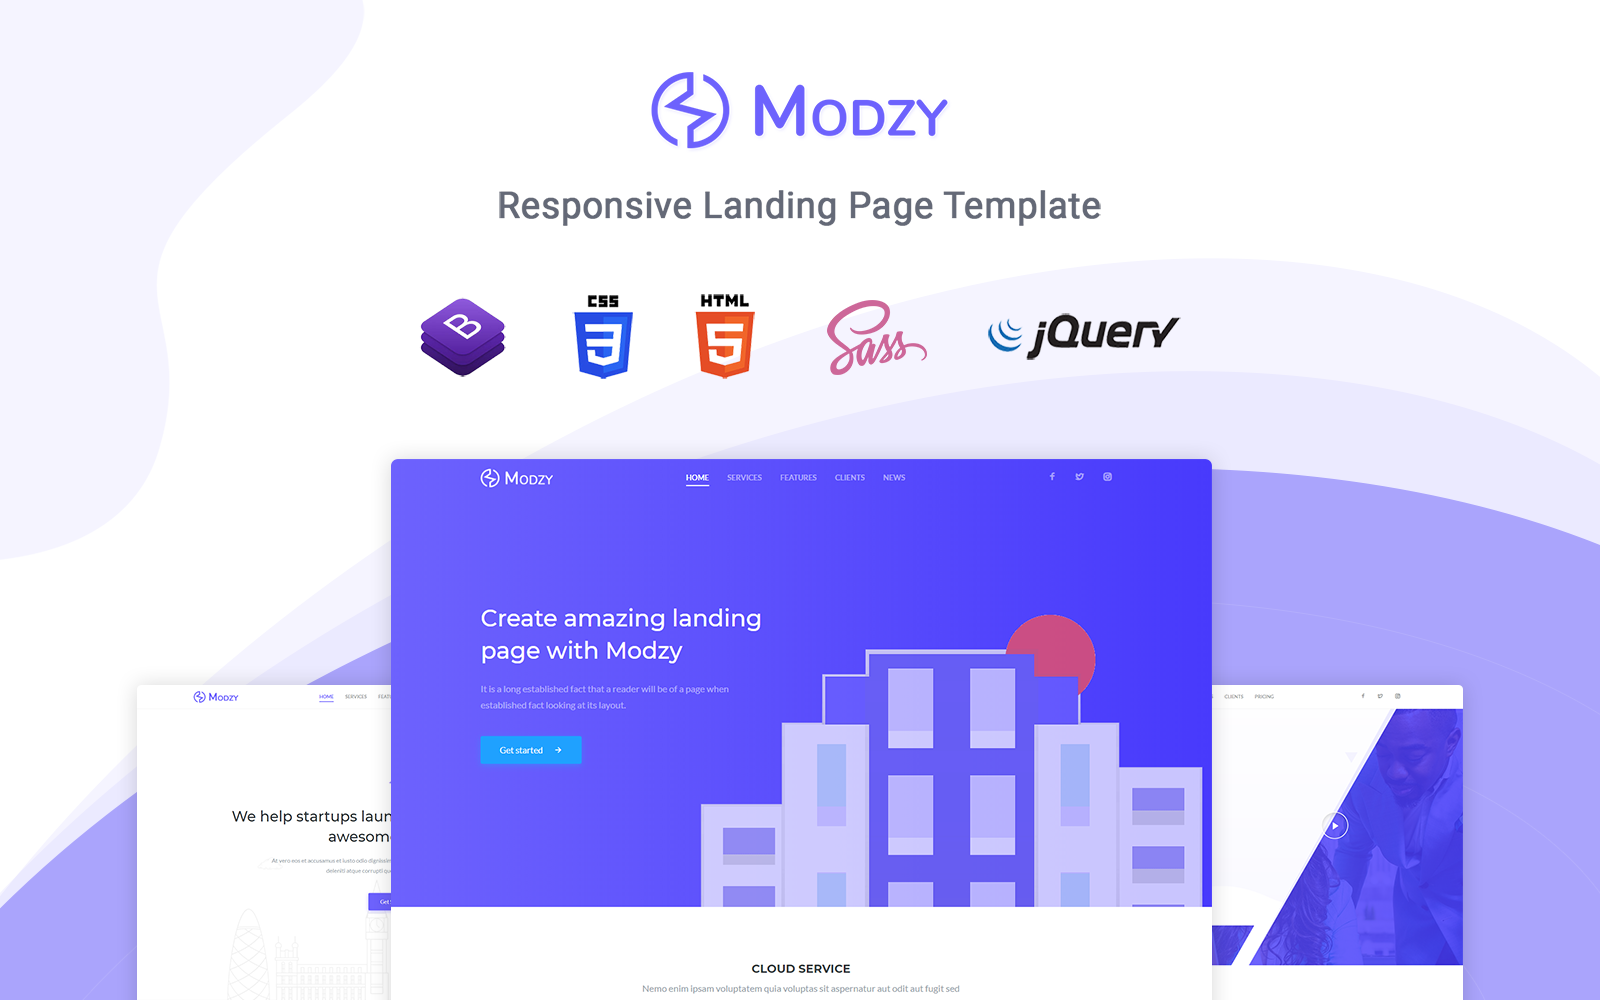 Modzy - Responsive Landing Page Template